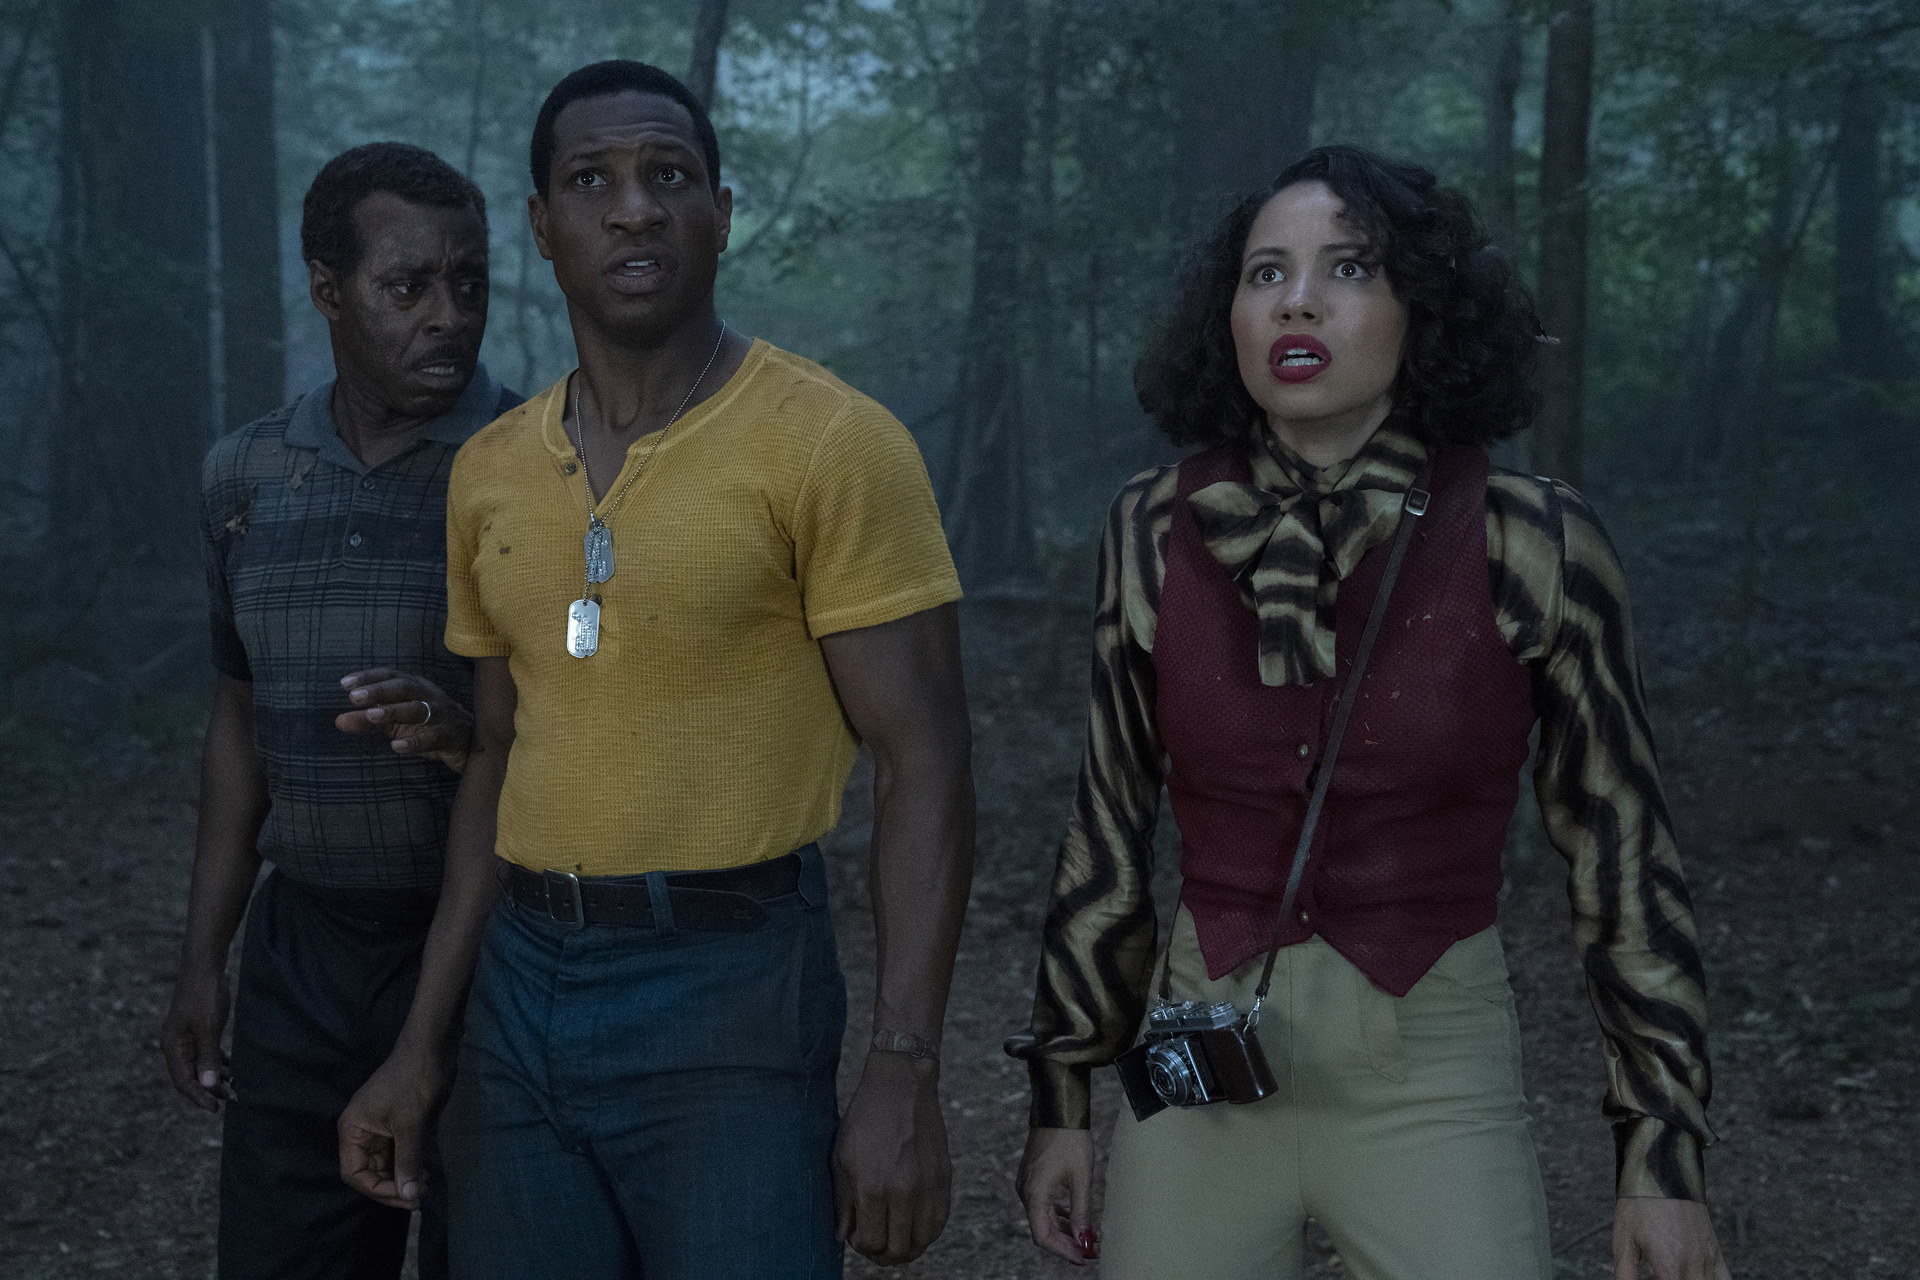 Two men and a woman looking terrified in a forrest.